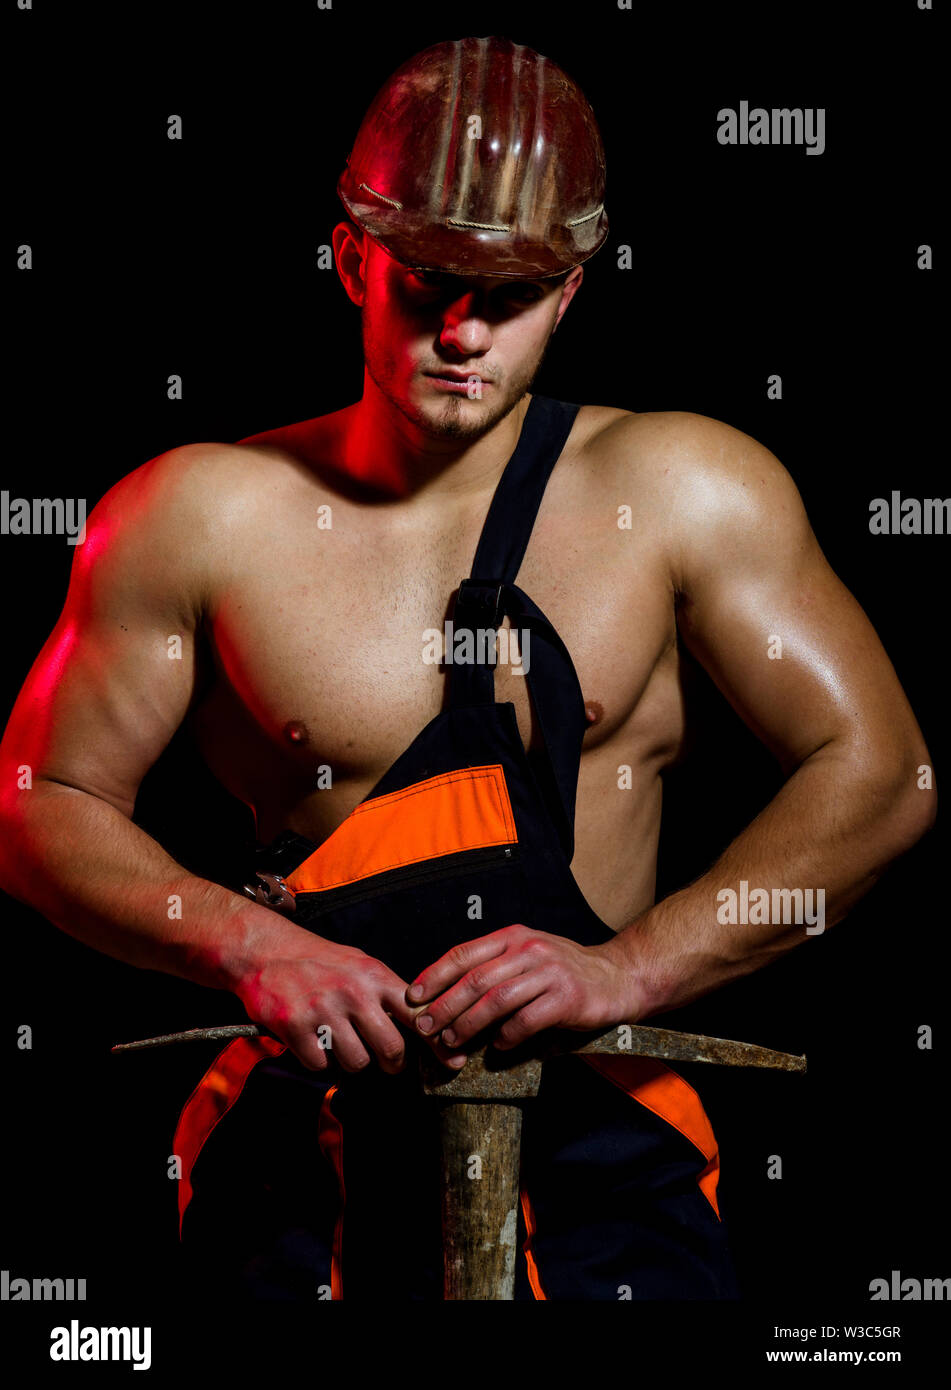 Under construction, we are closed for refurbishment. Muscular man worker. Hard worker with muscular torso. Construction worker. Man miner with mining - Stock Image